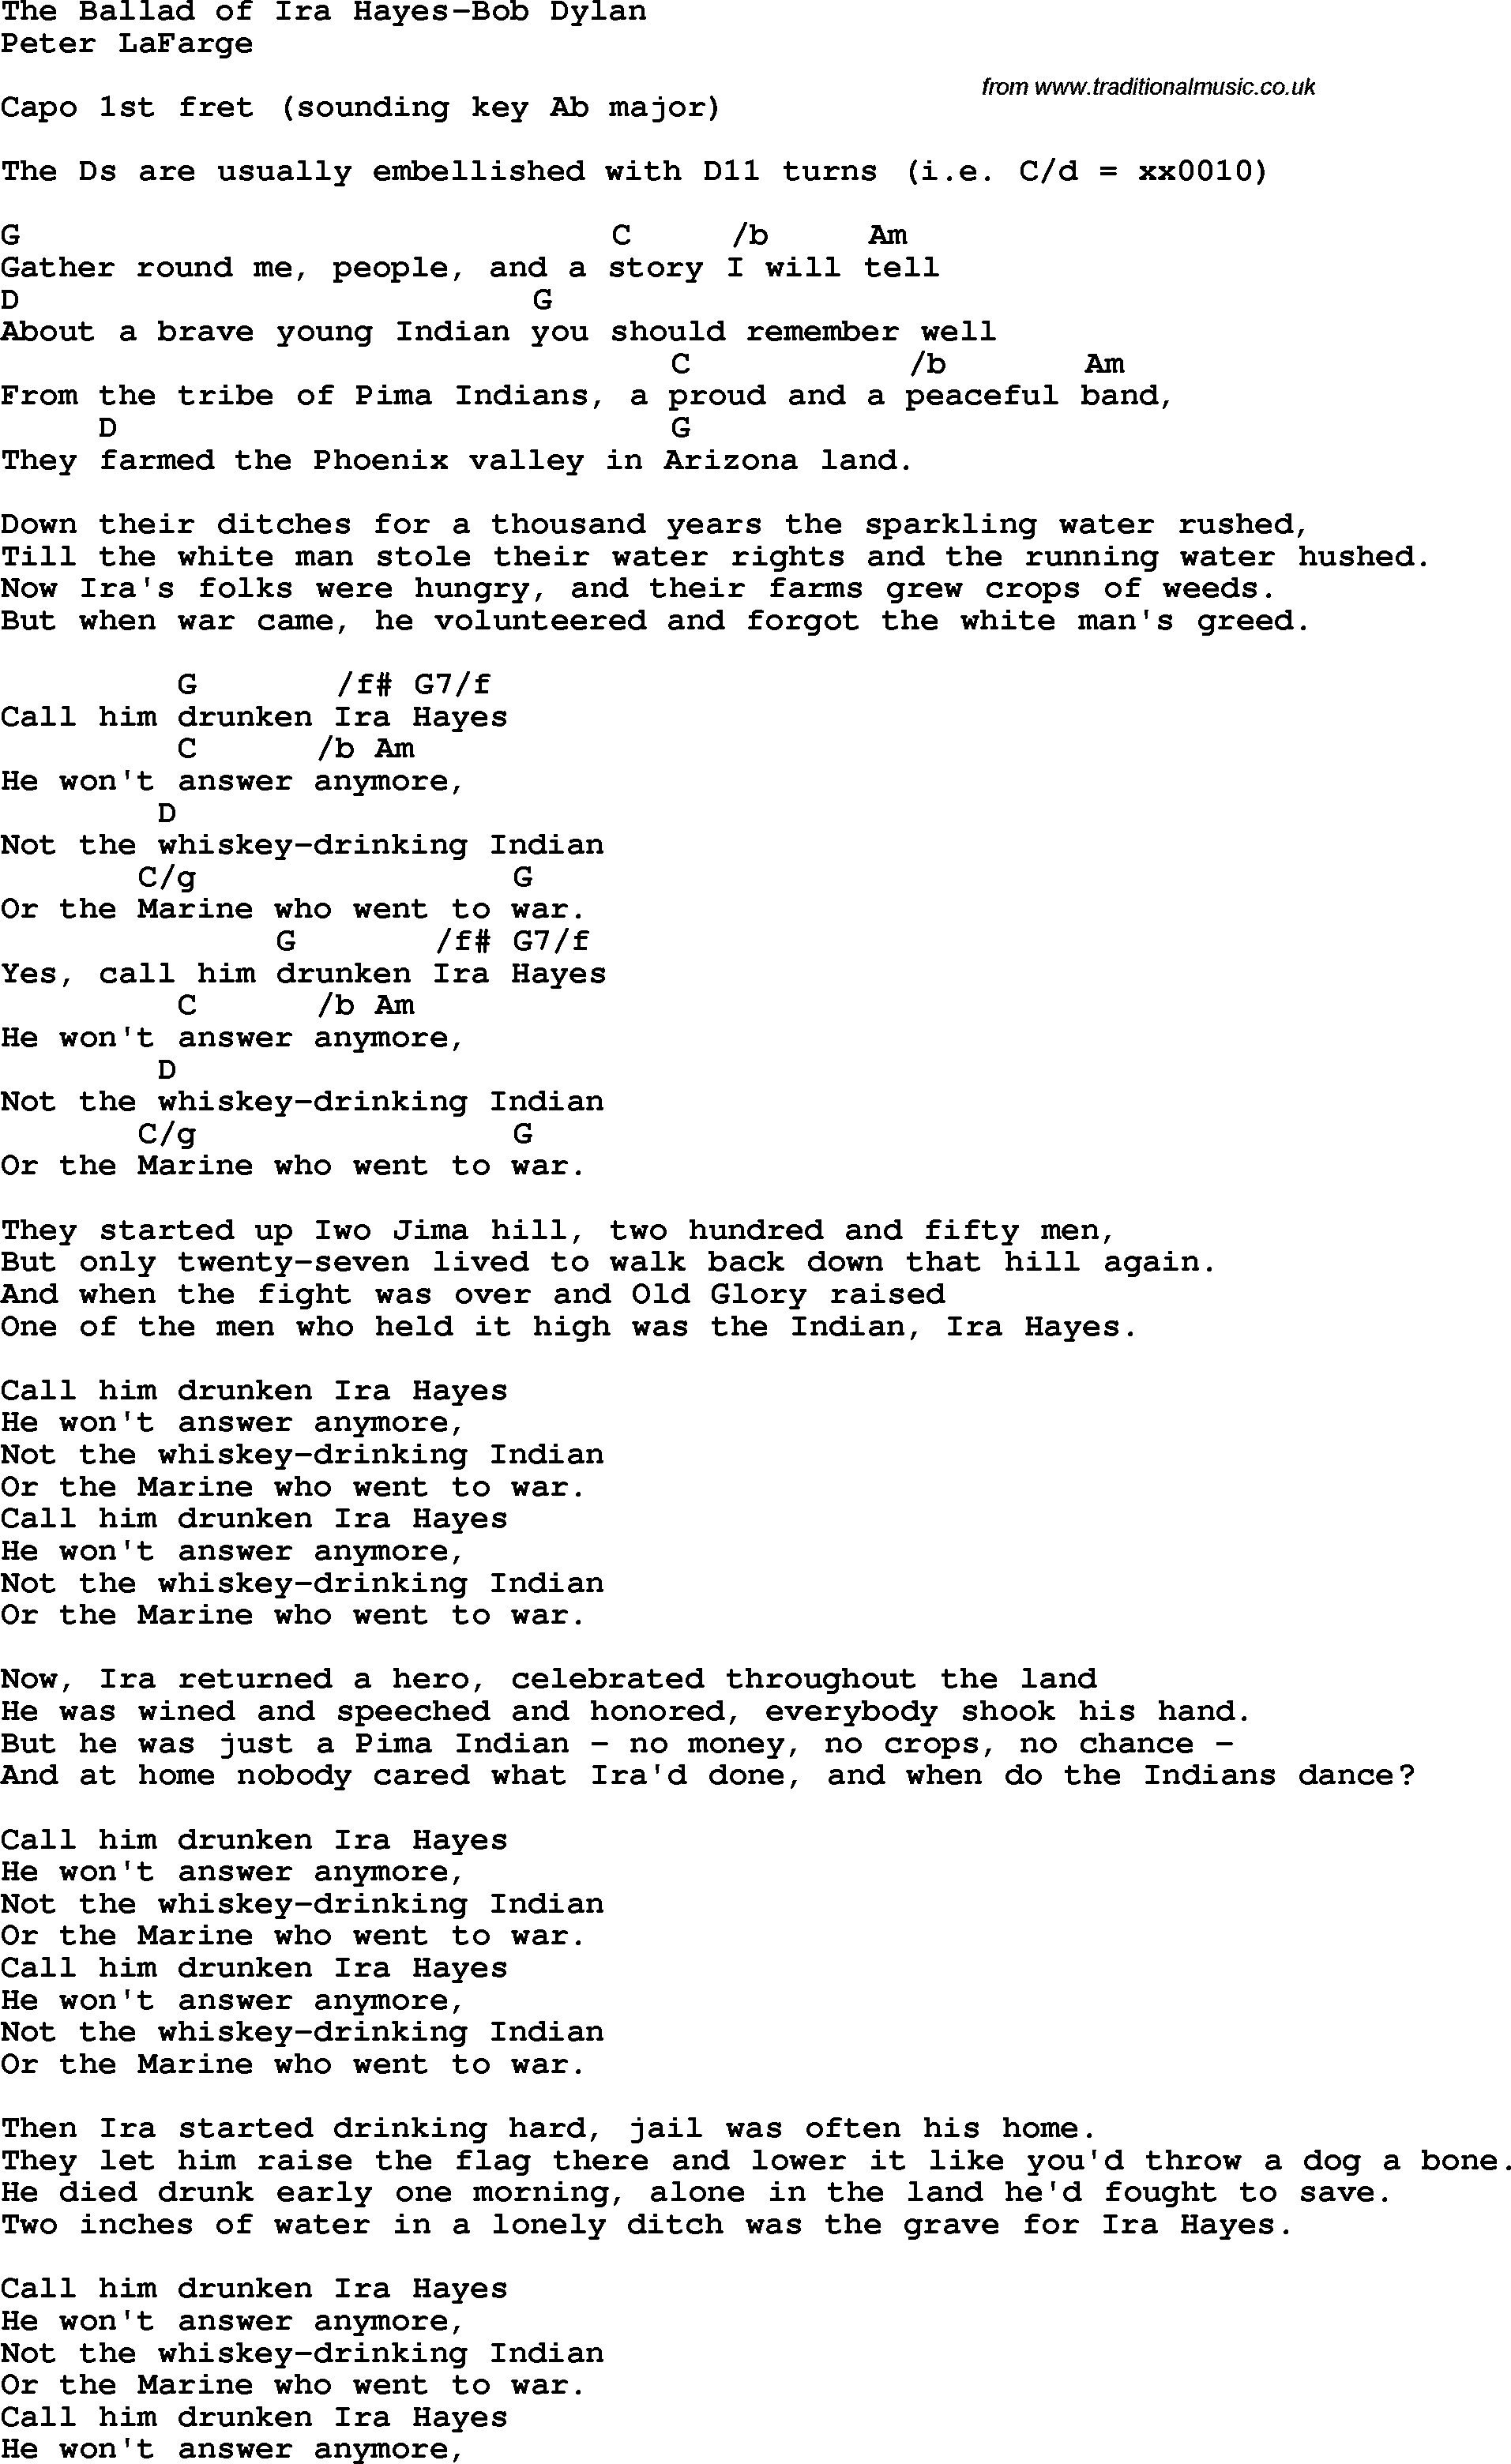 Protest song: The Ballad Of Ira Hayes-Bob Dylan lyrics and chords